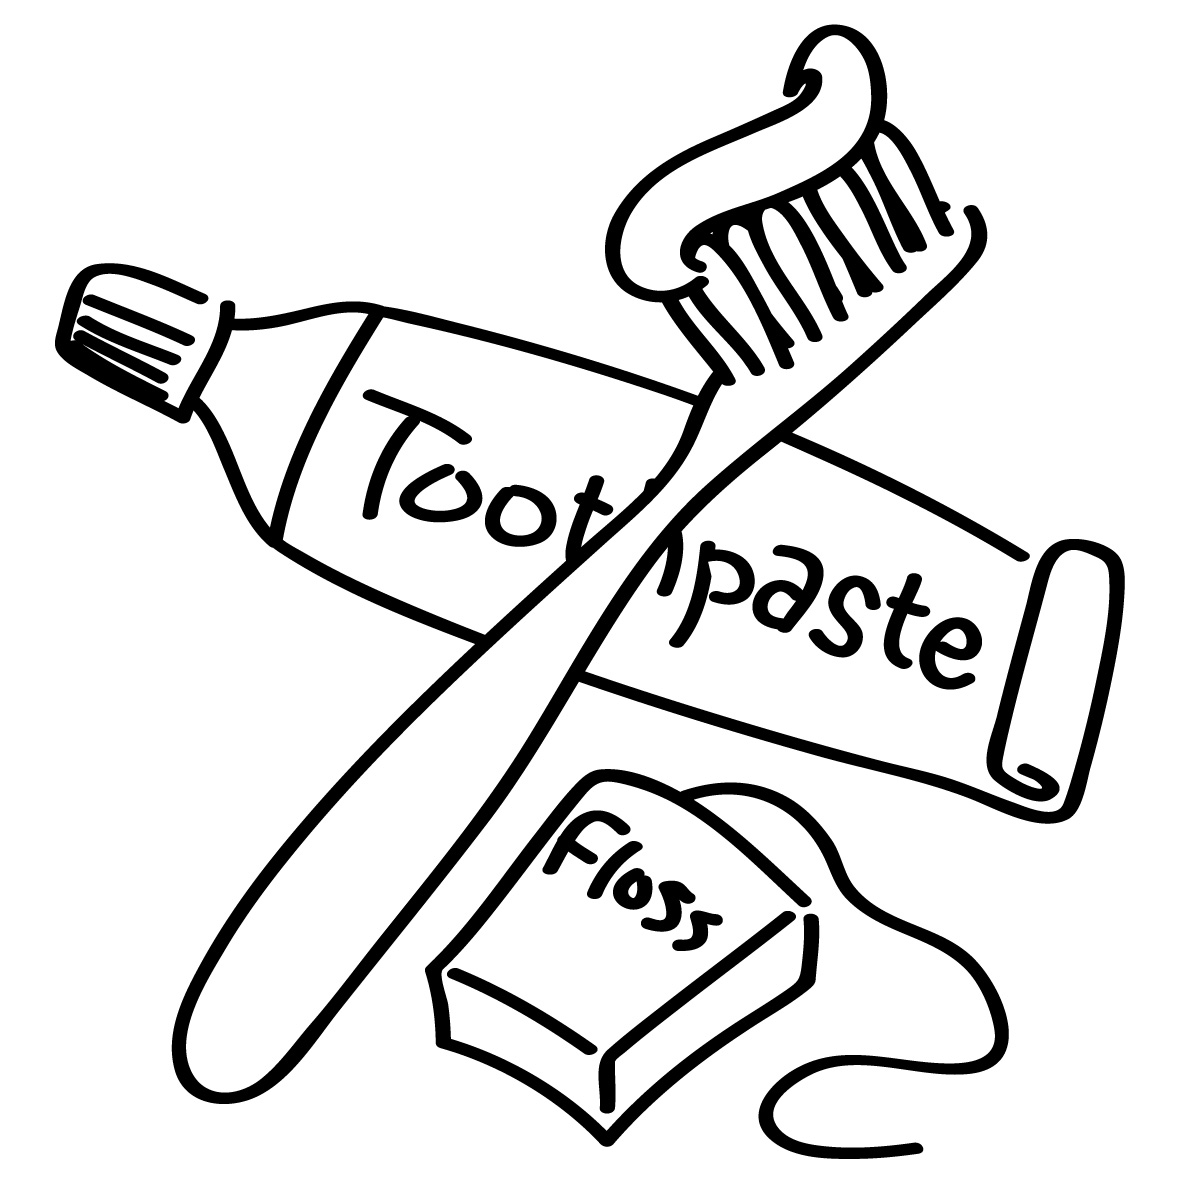 Contribution statement clipart free stock Dental floss cliparts free download clip art jpg 5 - Clipartix free stock